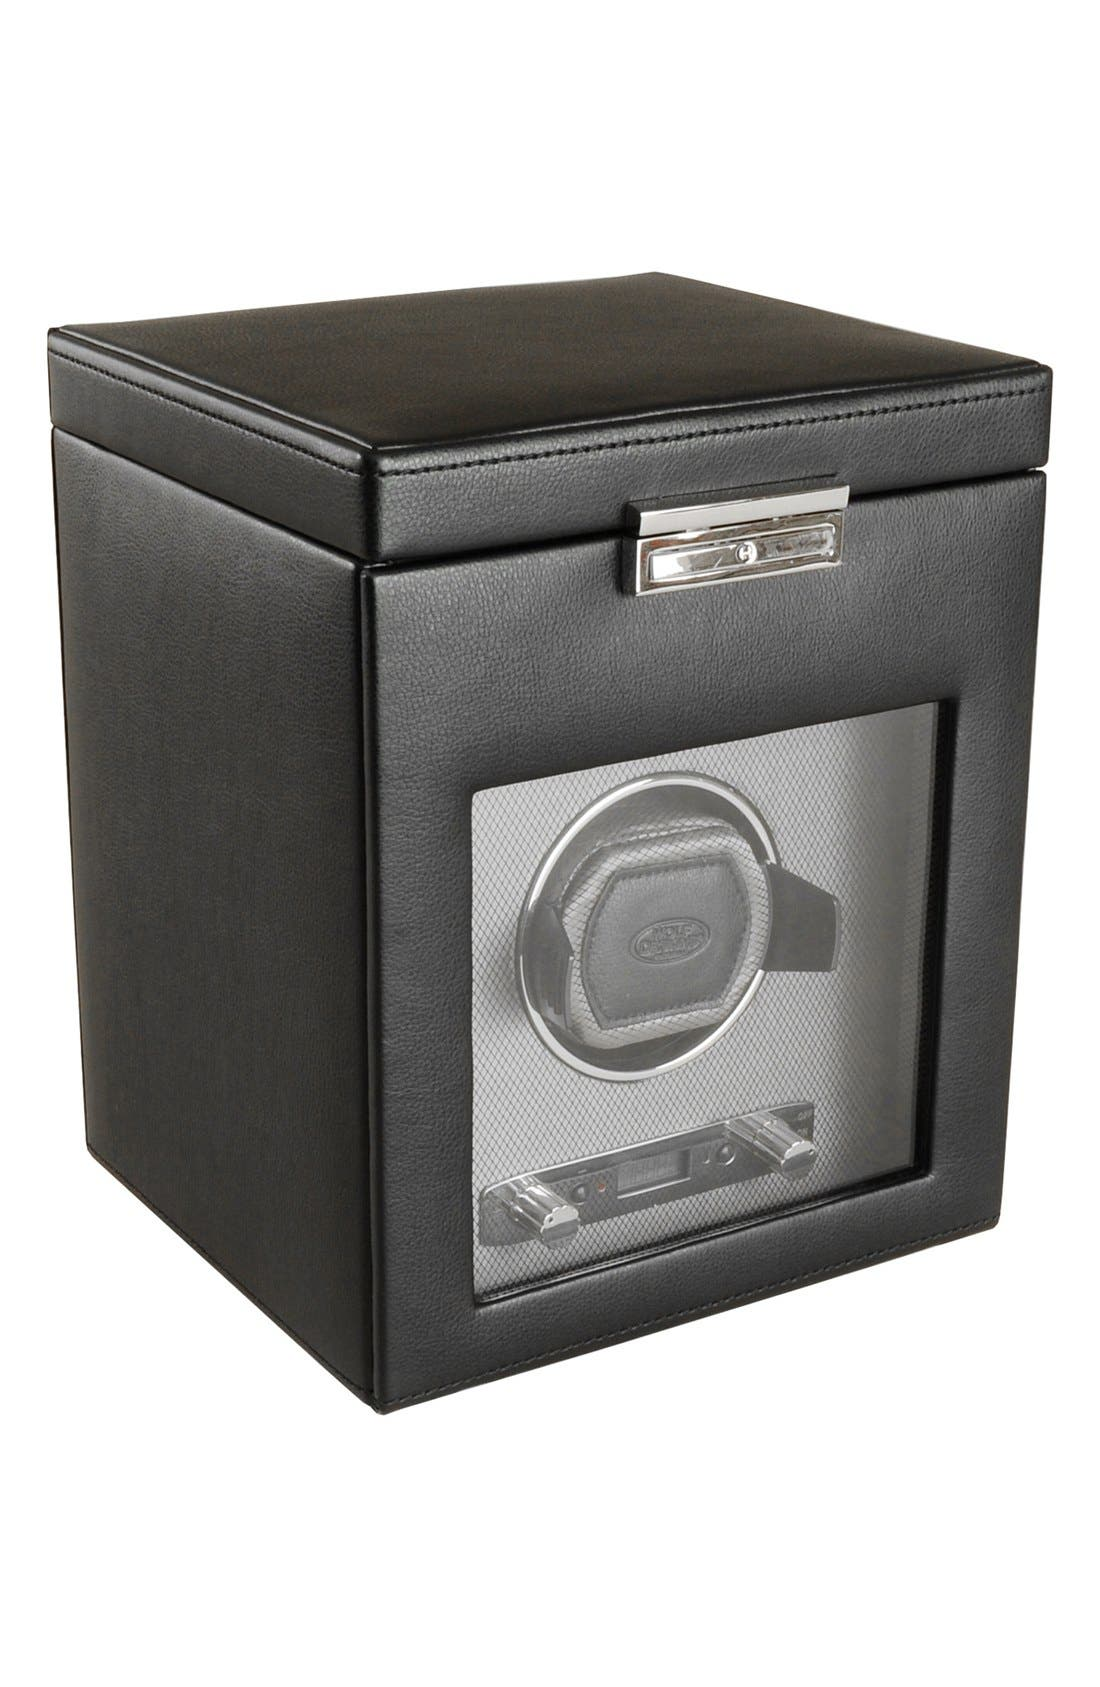 Viceroy Watch Winder & Storage Space,                         Main,                         color, Black